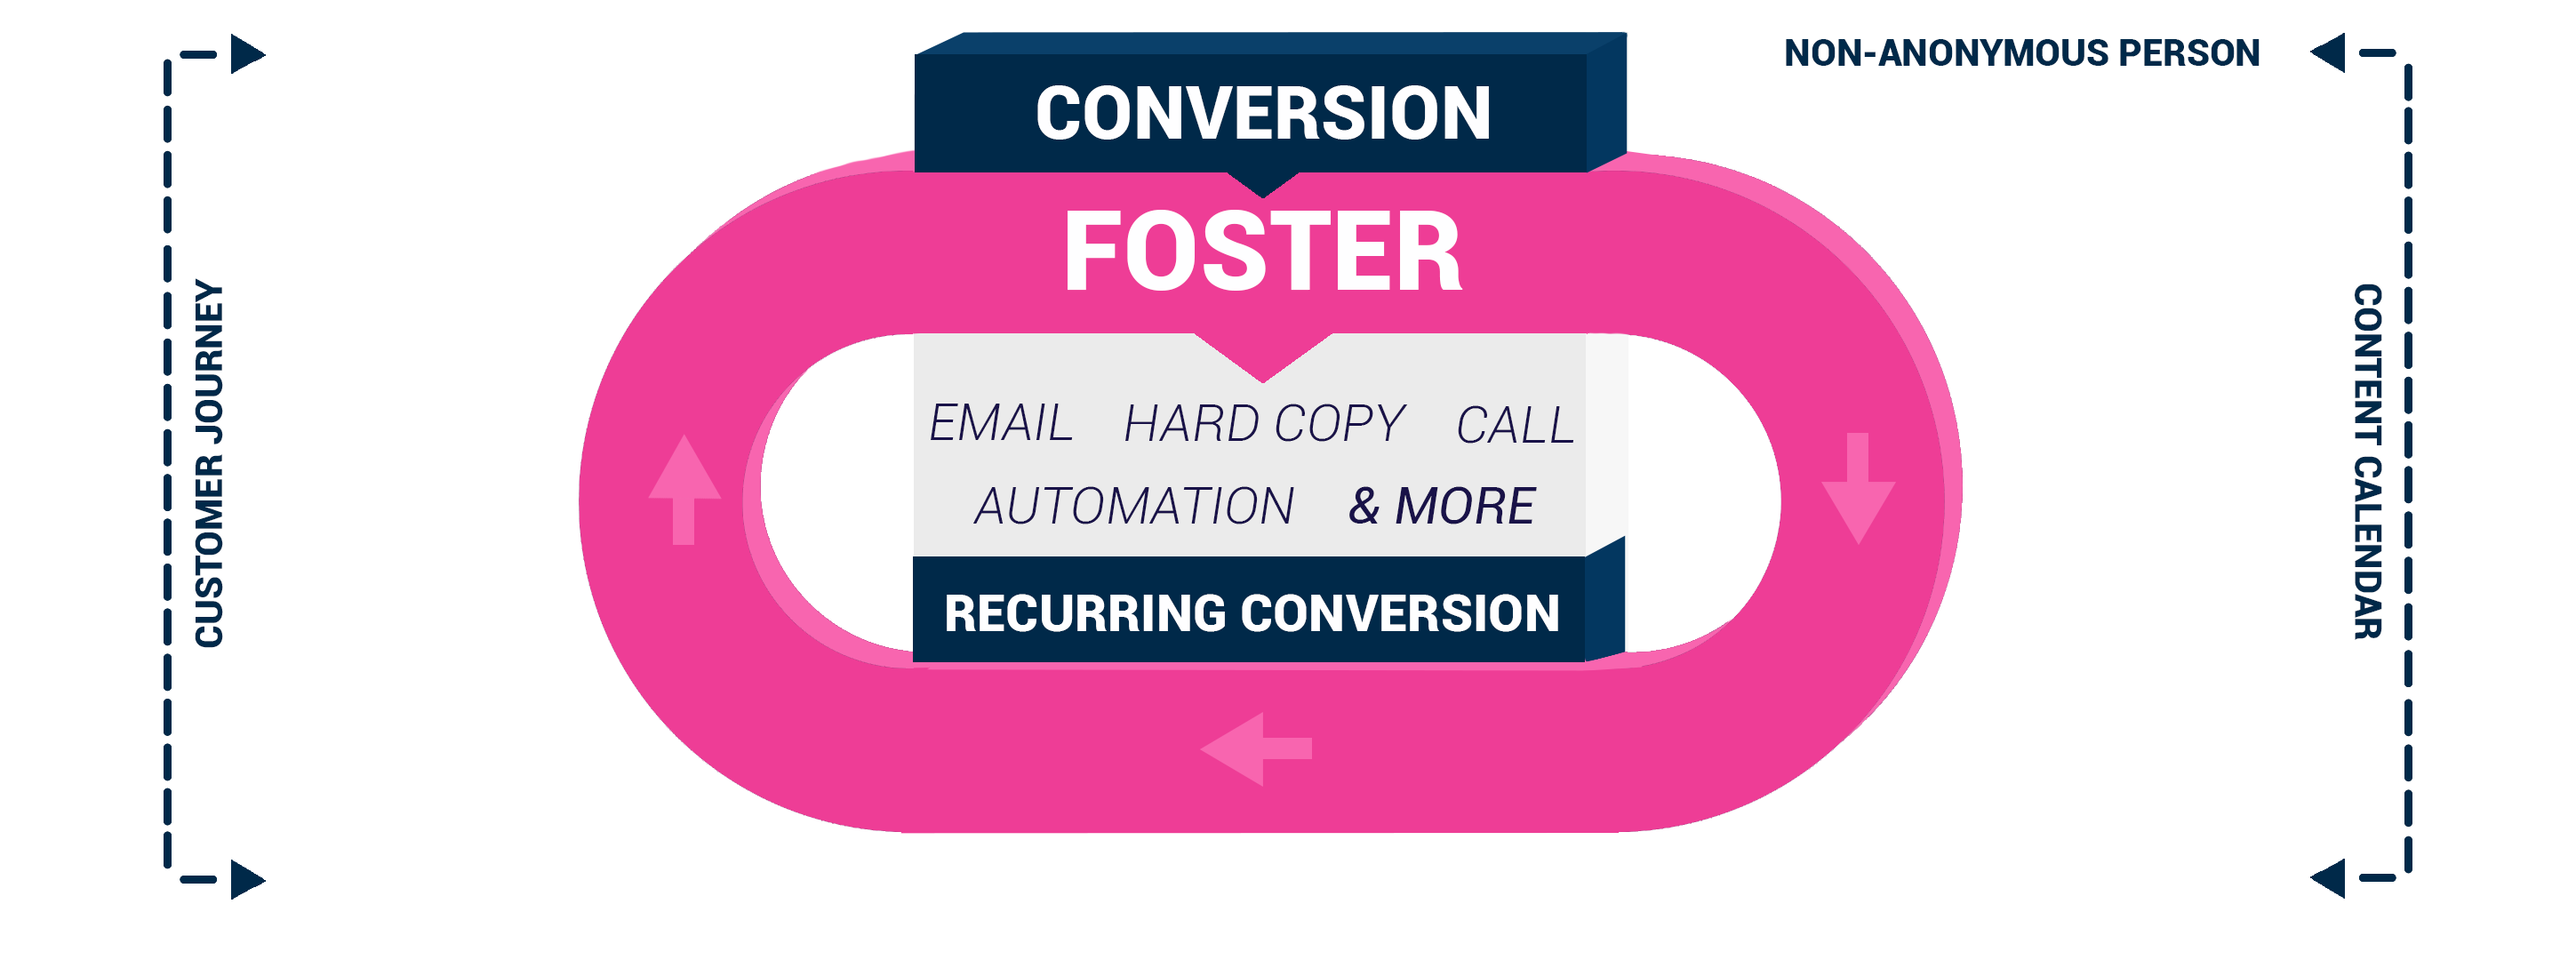 Foster Fase 4F Model Marketing